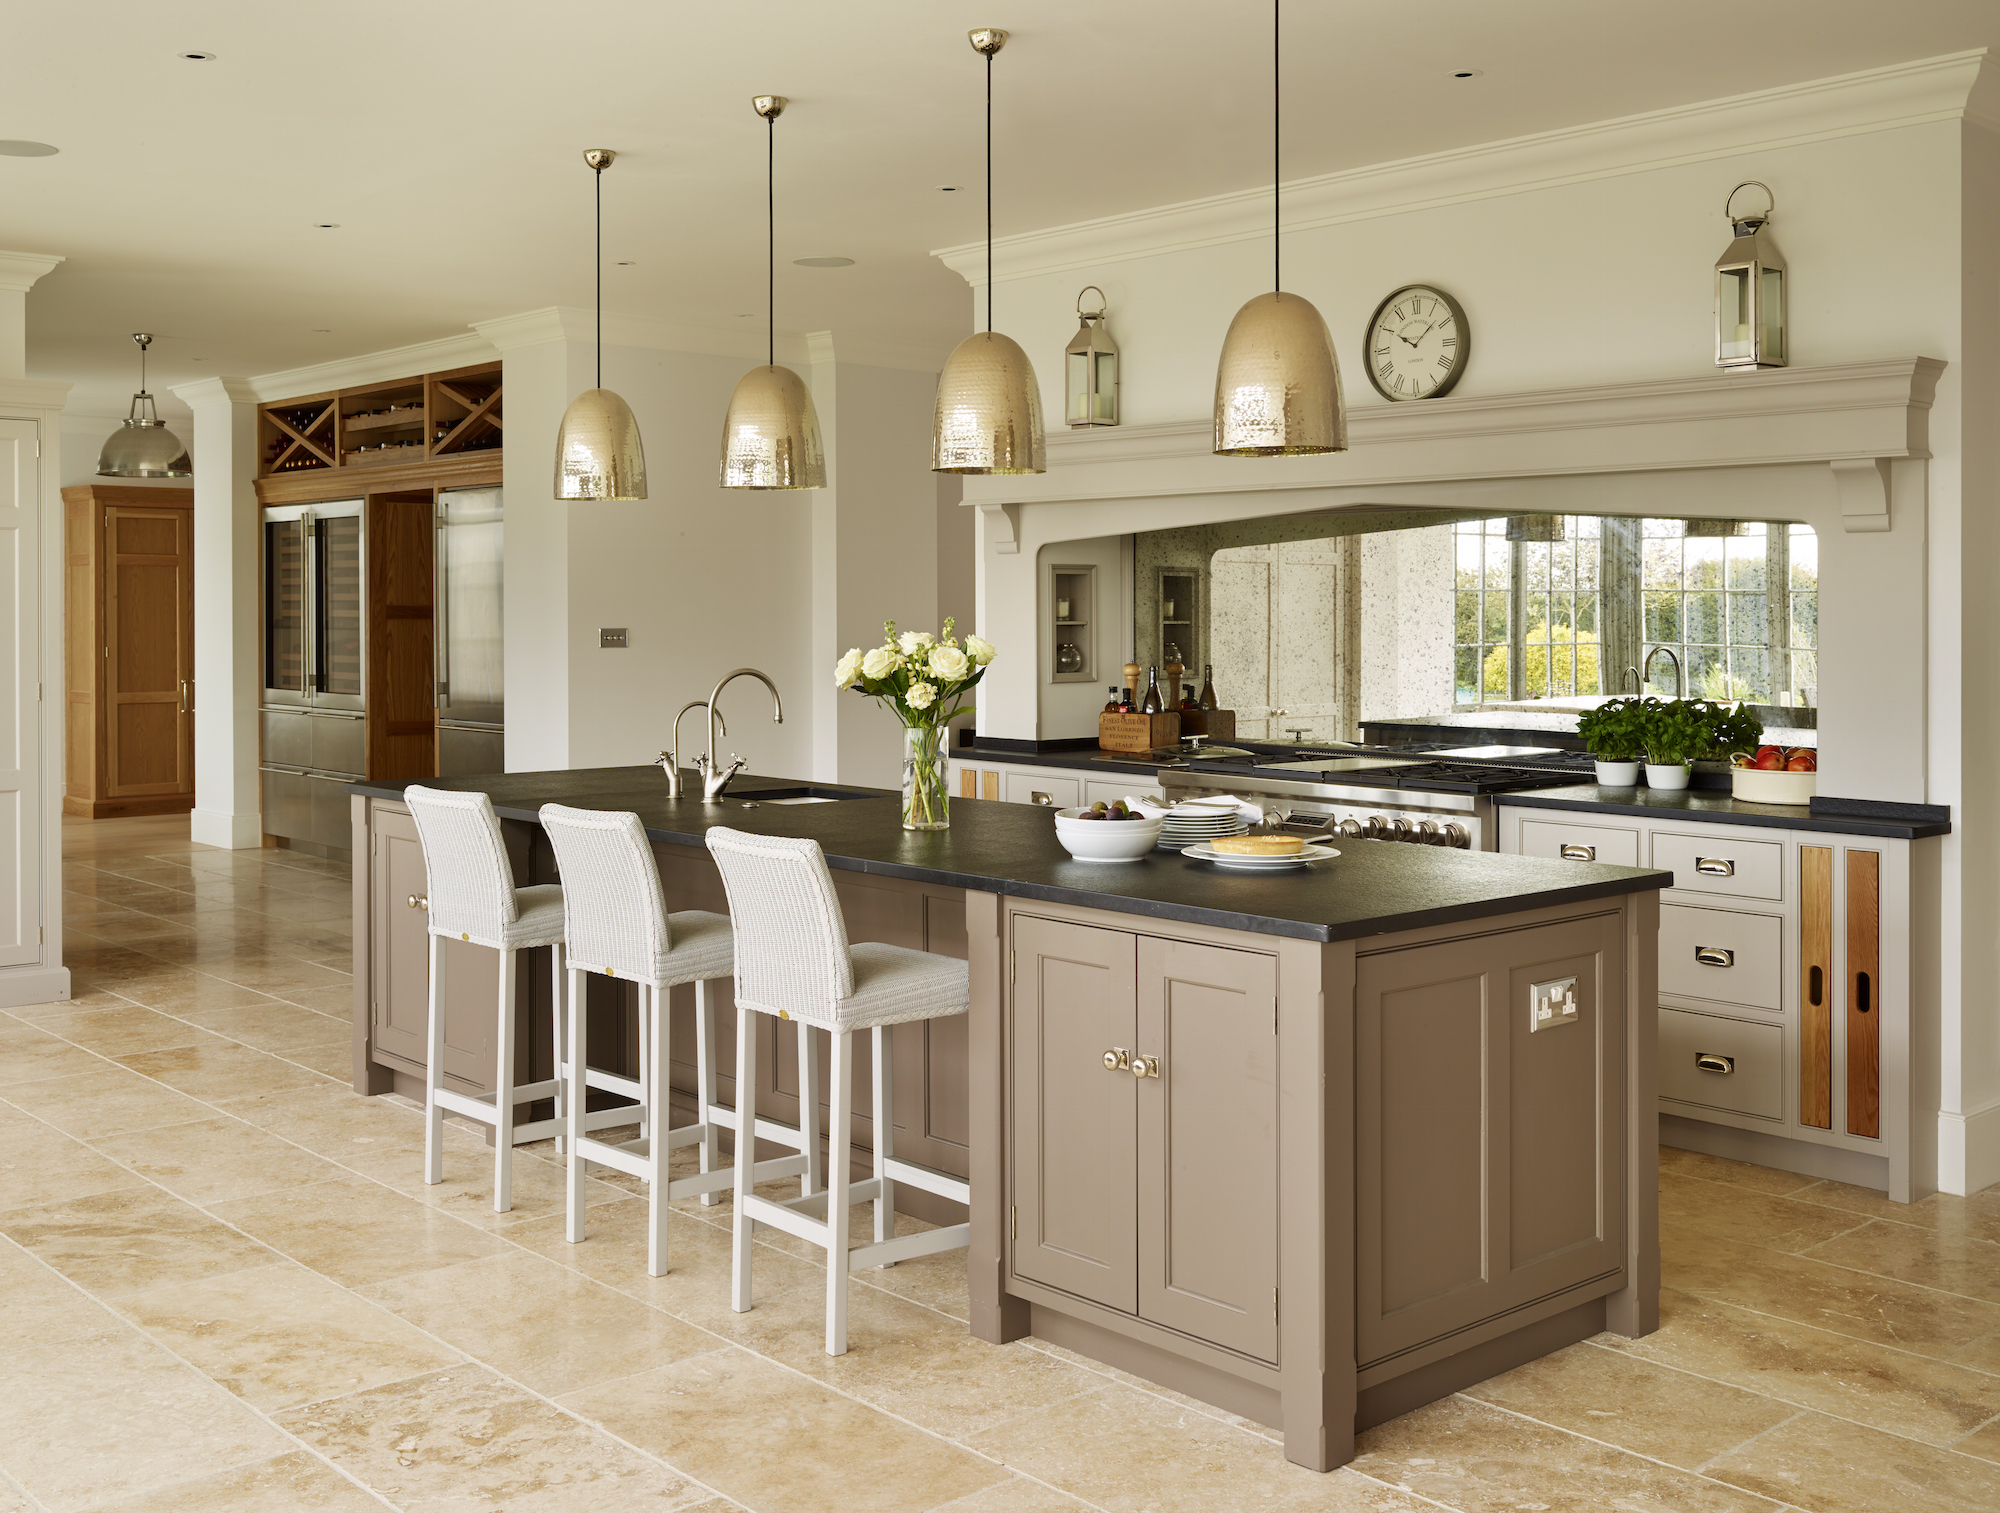 The Island Modular Kitchen Design Looks Perfect With The Four Lamps Hanged  Over The Dining Portion.The Light Brown Color In The Kitchen Looks So  Beautiful ...